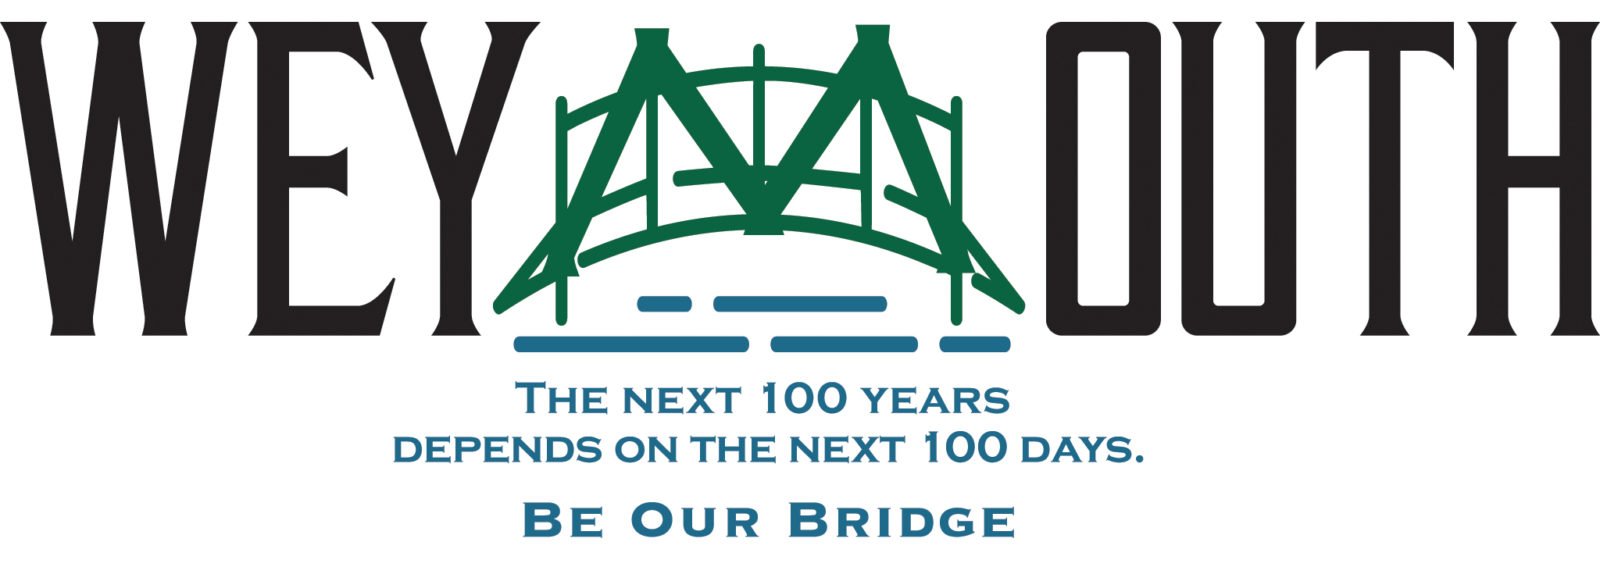 Weymouth BRIDGE logo